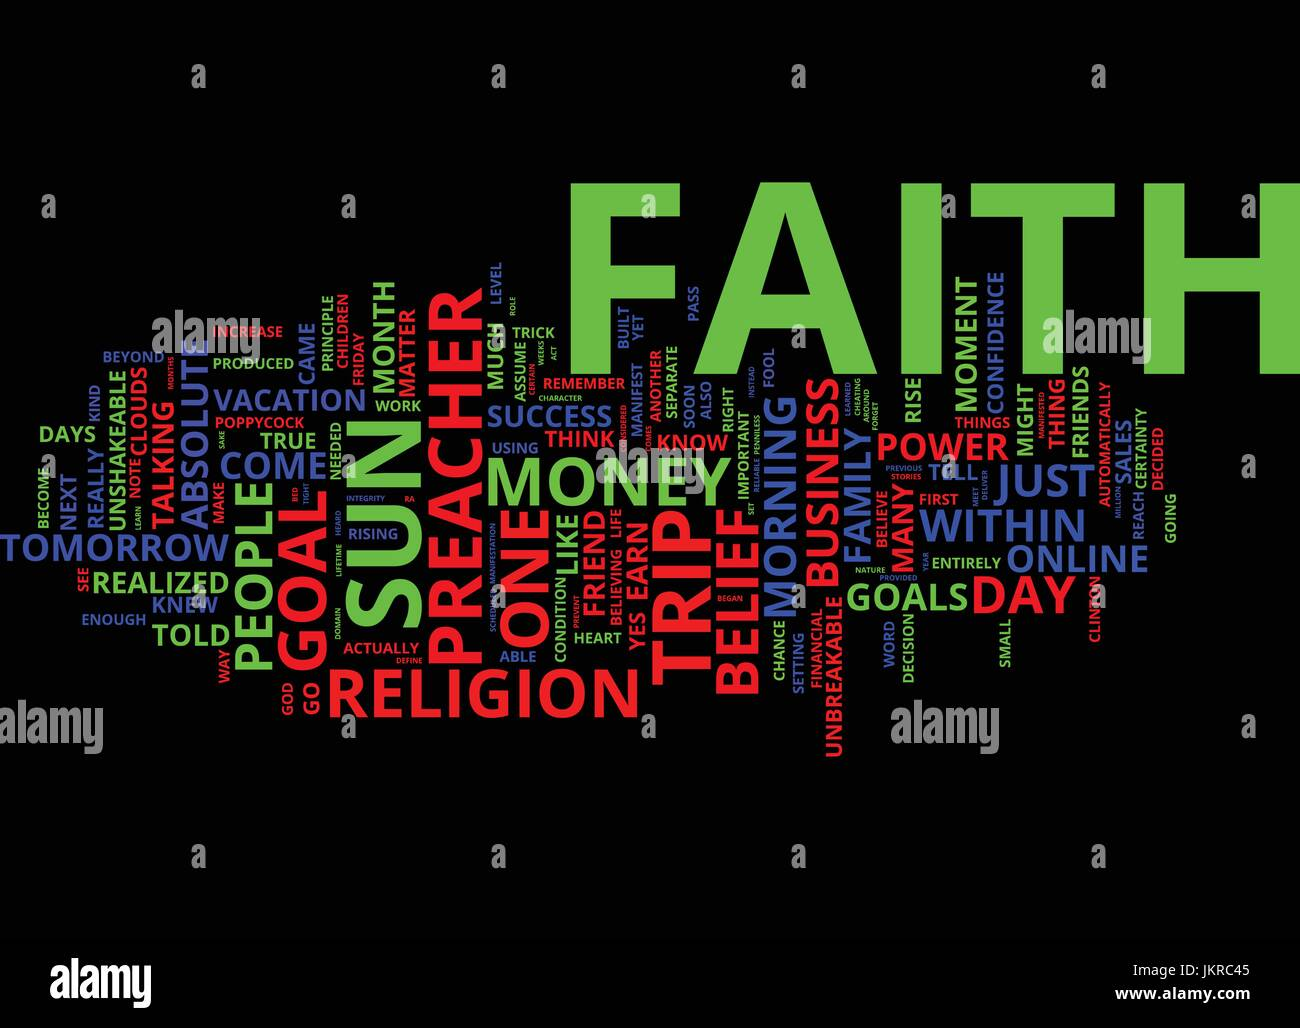 THE POWER OF FAITH IN YOUR ONLINE BUSINESS Text Background Word Cloud Concept Stock Vector